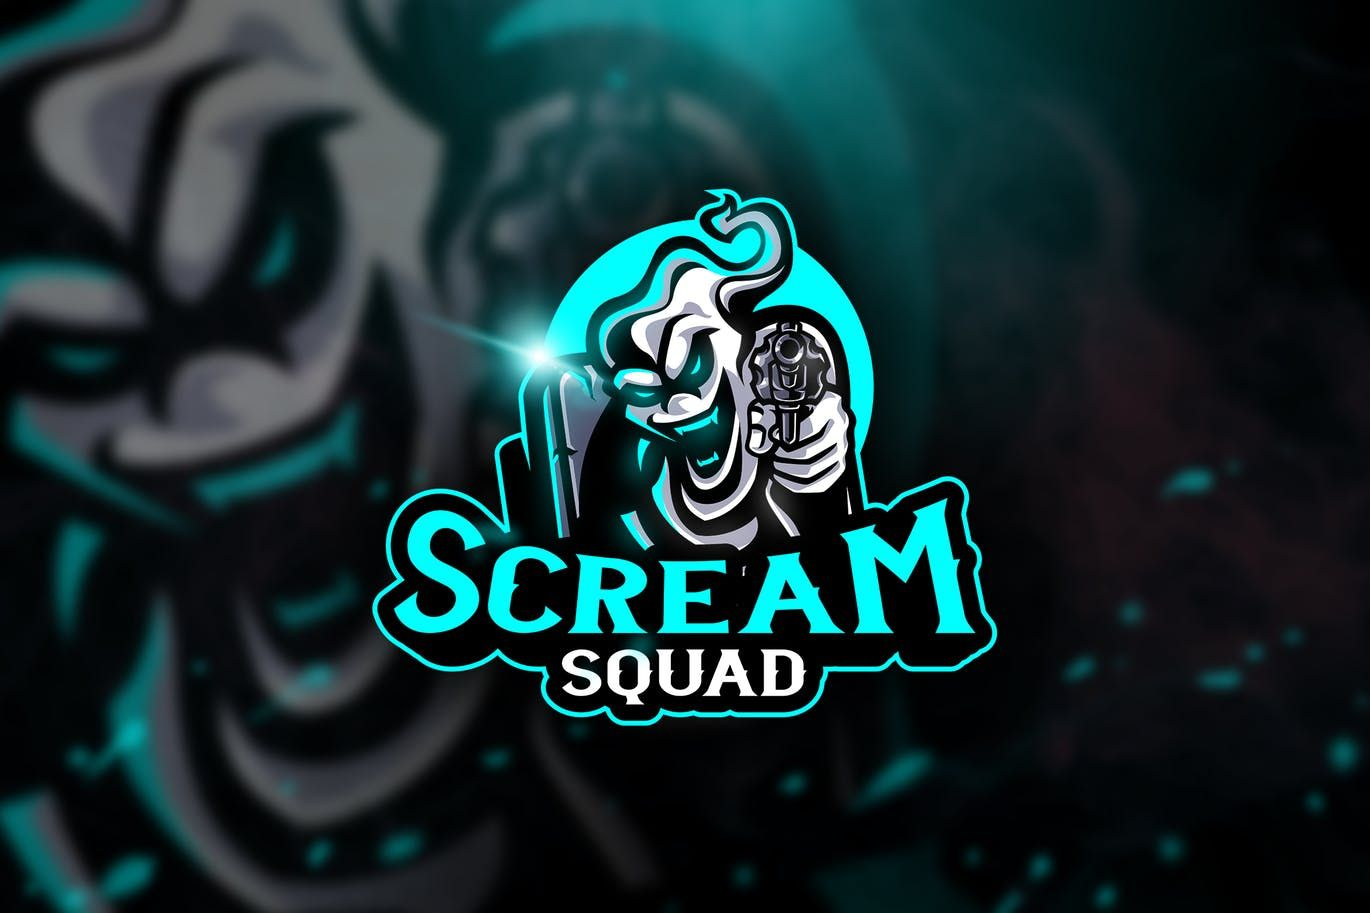 Scream Squad.